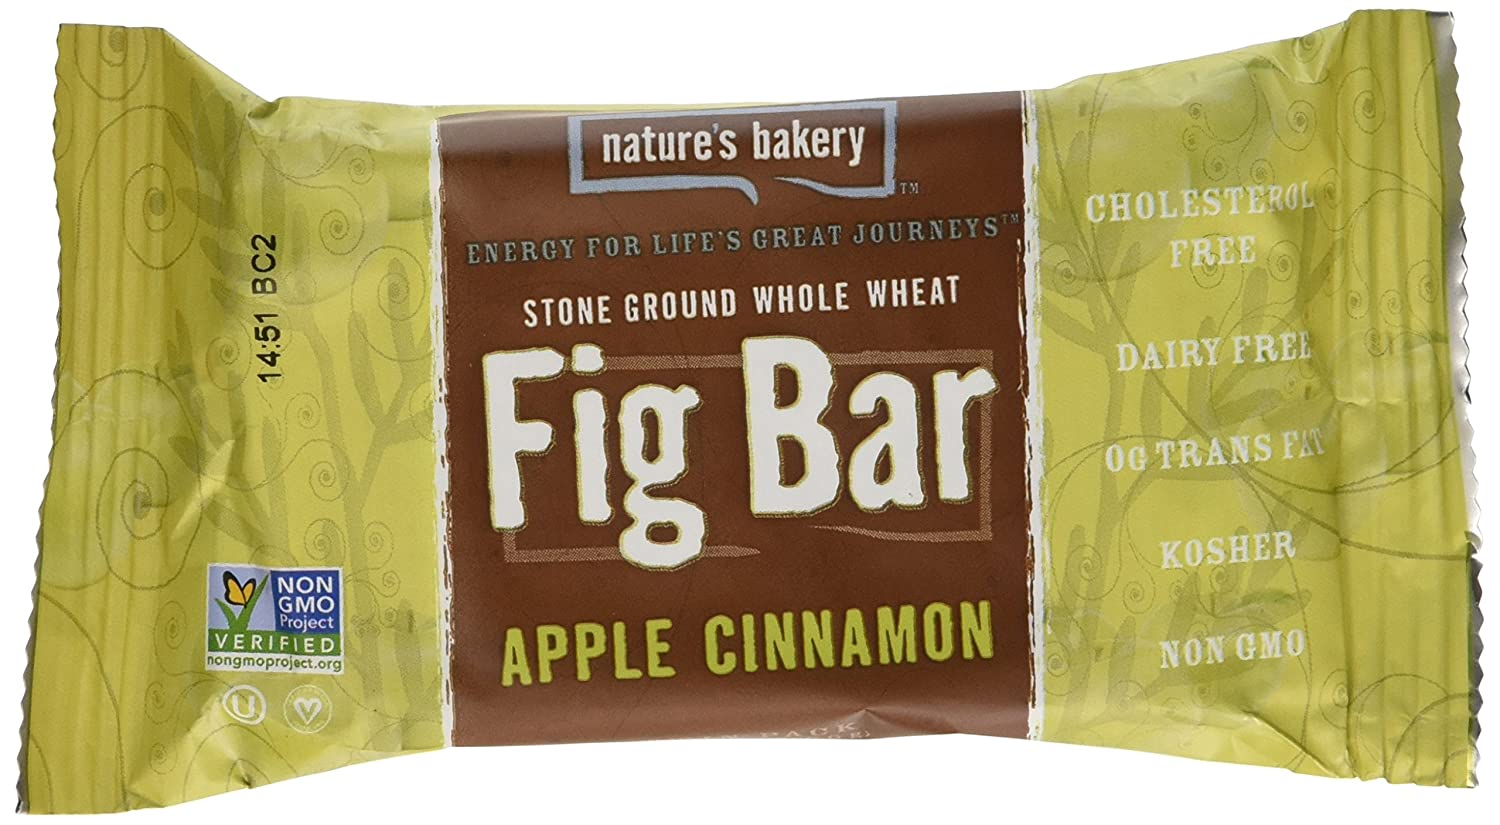 Nature's Bakery Stone Ground Whole Wheat Fig Bar Apple Cinnamon 6-2 Ounce Twin Packs (Pack of 4)